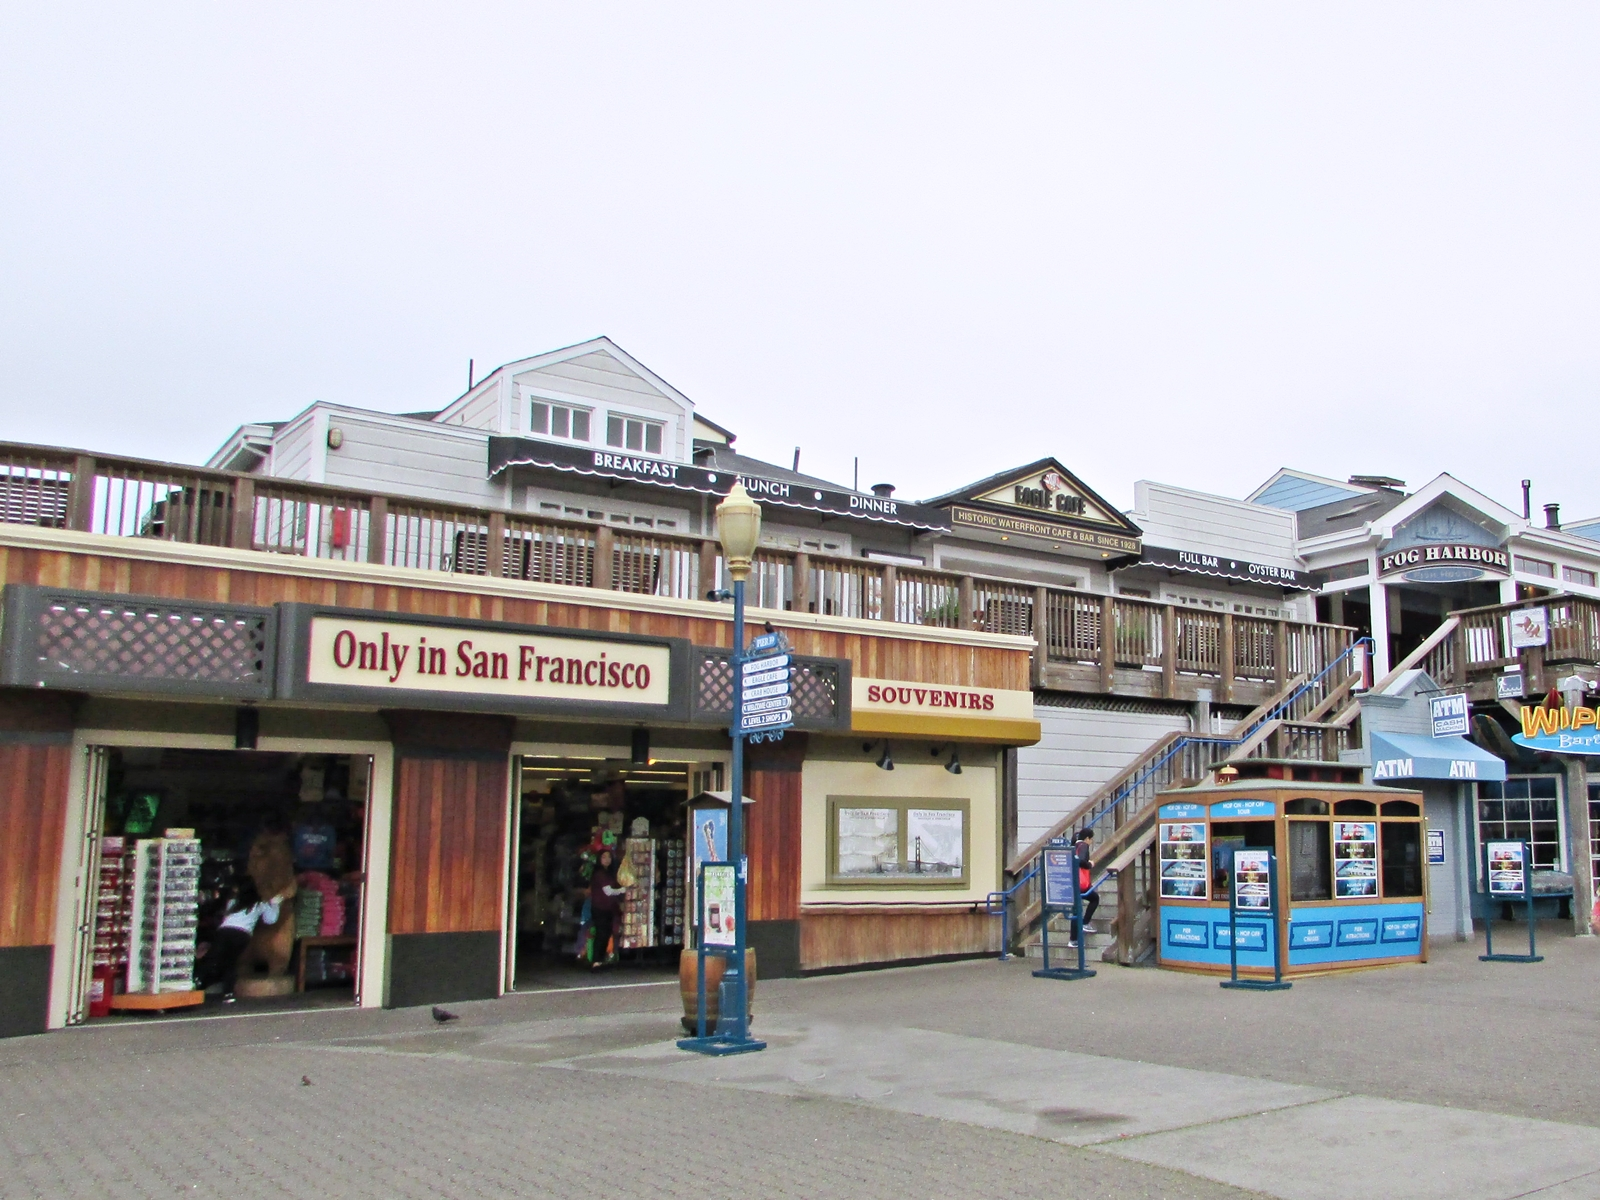 San Francisco - Pier 39 - USA Rundreise - Roadtrip - Reisebericht - Travel Diary - Fashionladyloves